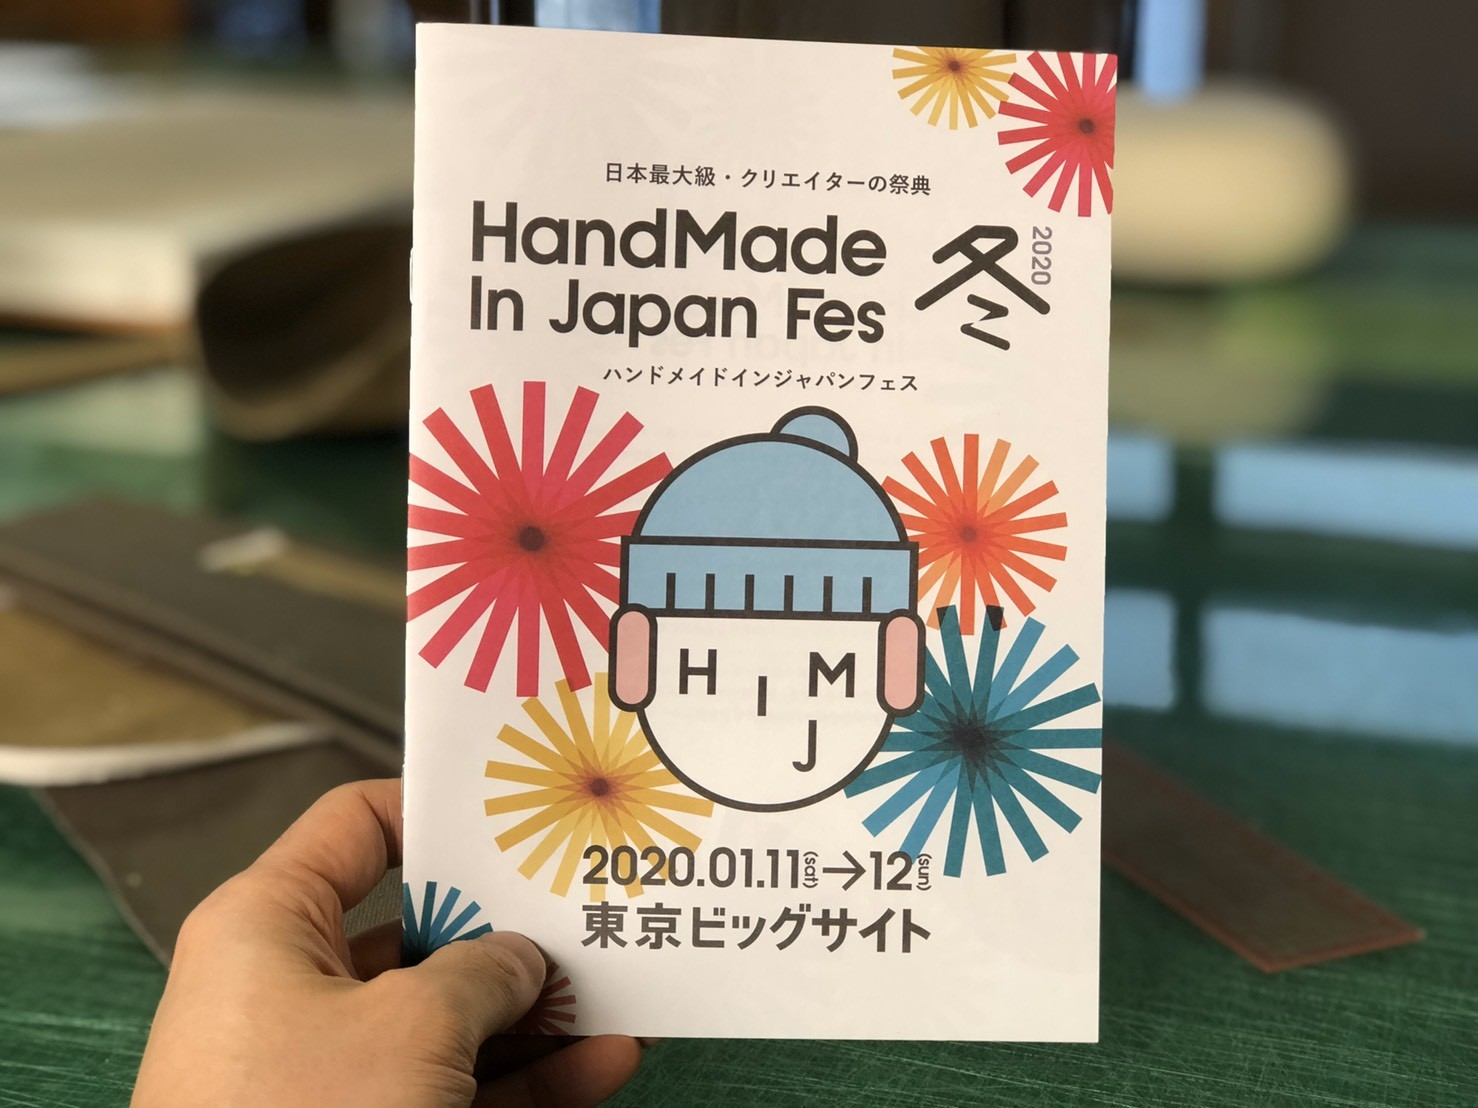 「HandMade In Japan Fes 冬2020」 出店決定!!